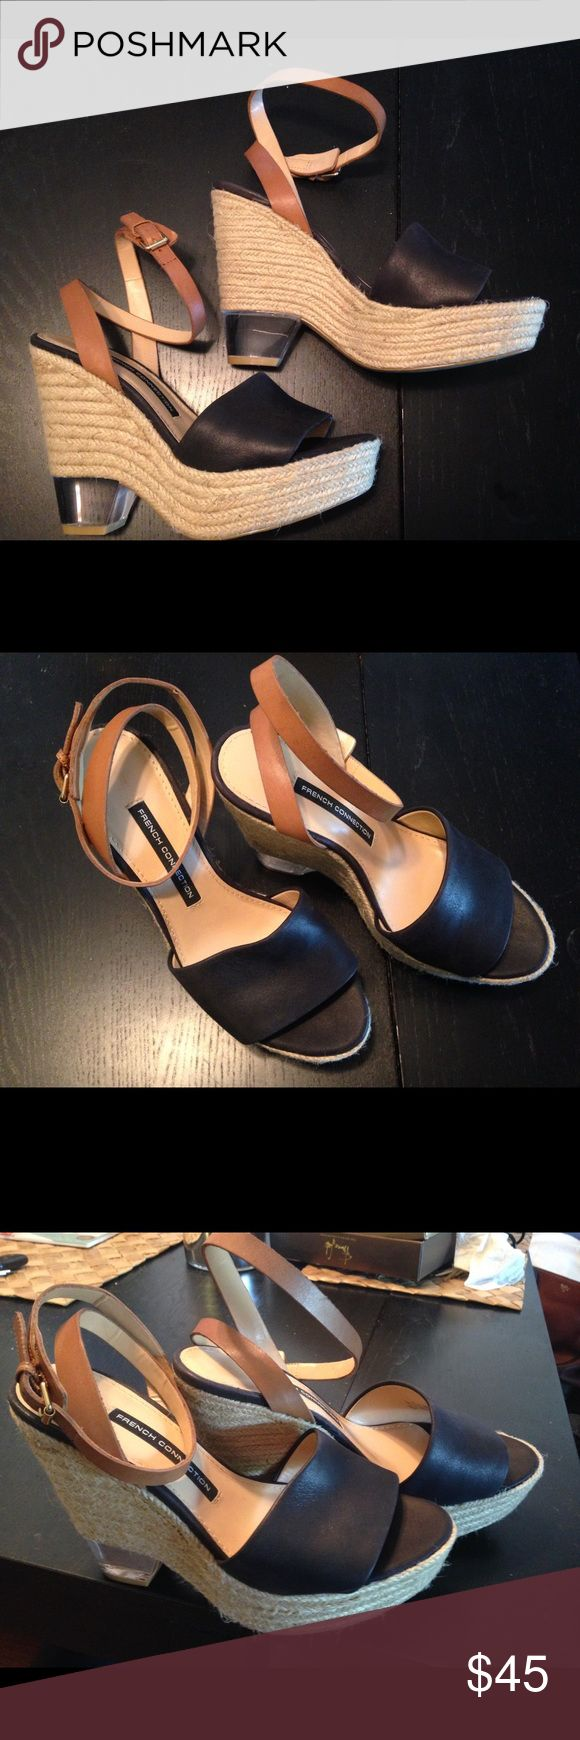 French Connection Wedges - Black and Tan leather Black and Tan leather with a clear heel Unique! French Connection Shoes Wedges